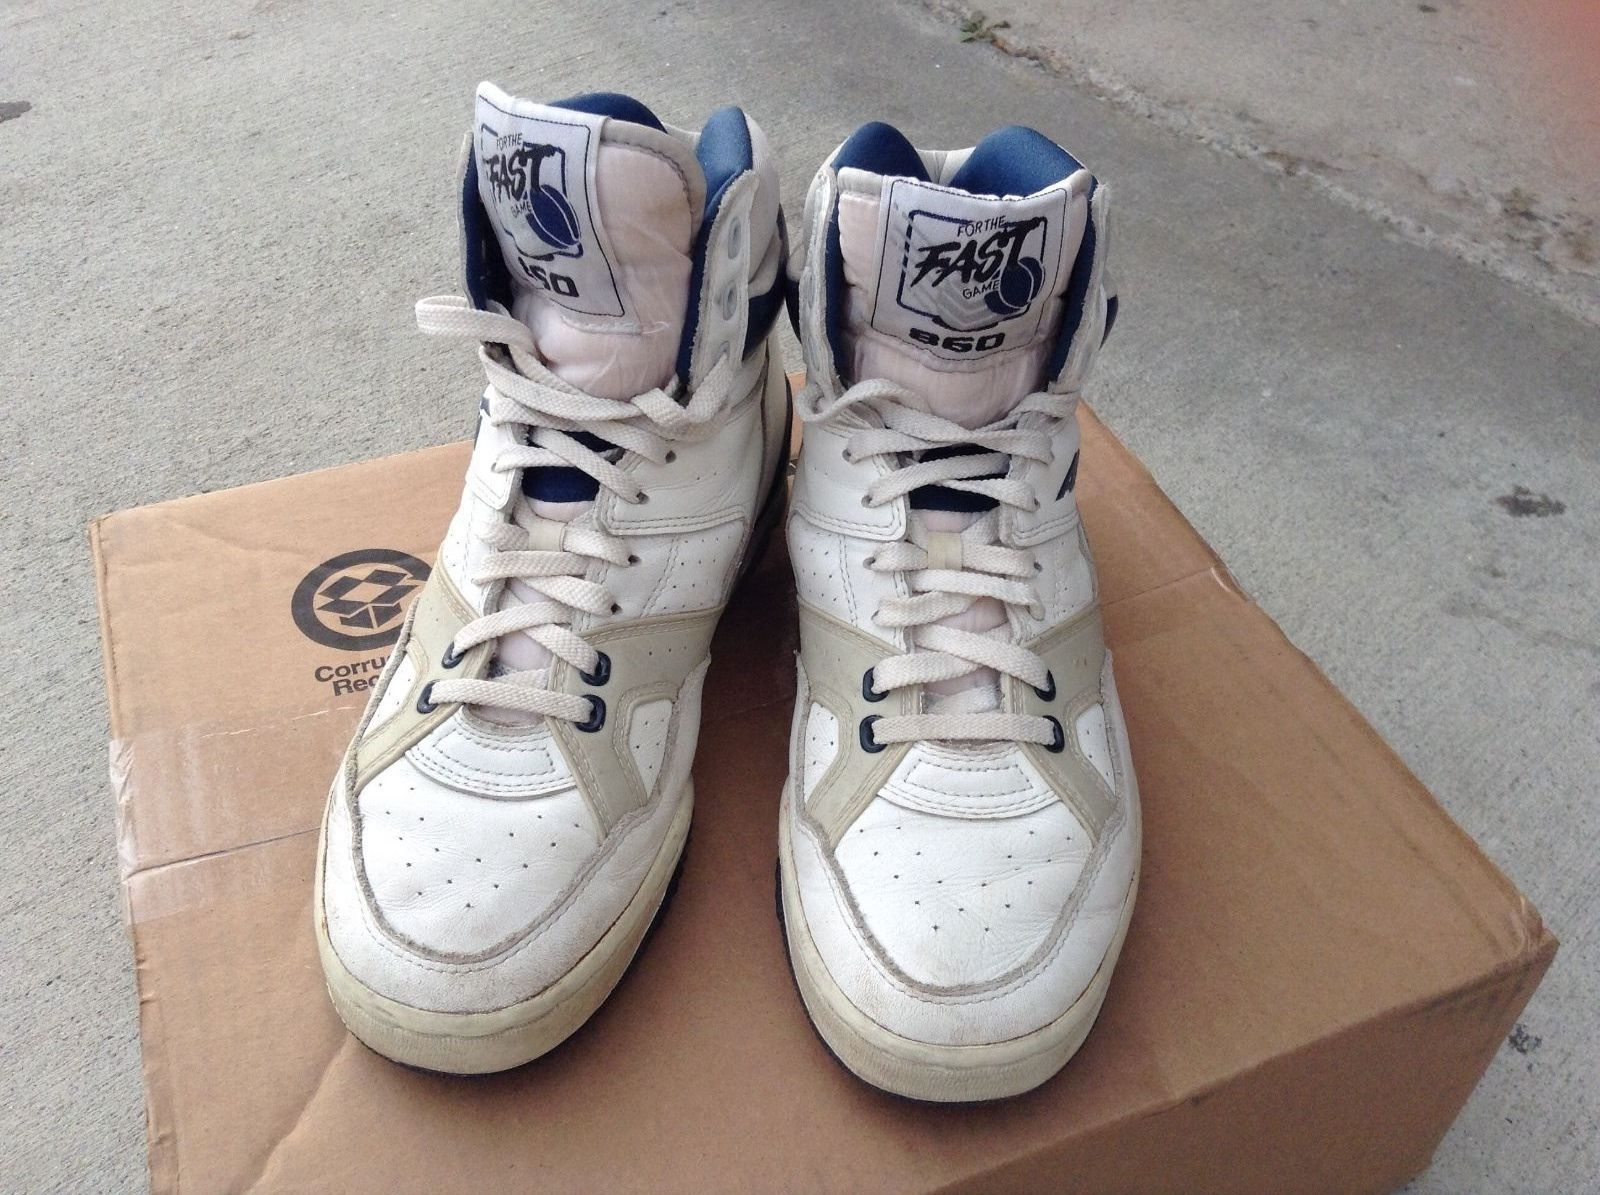 Vintage RARE 860 Avia Basketball Hightops High Top Sneakers